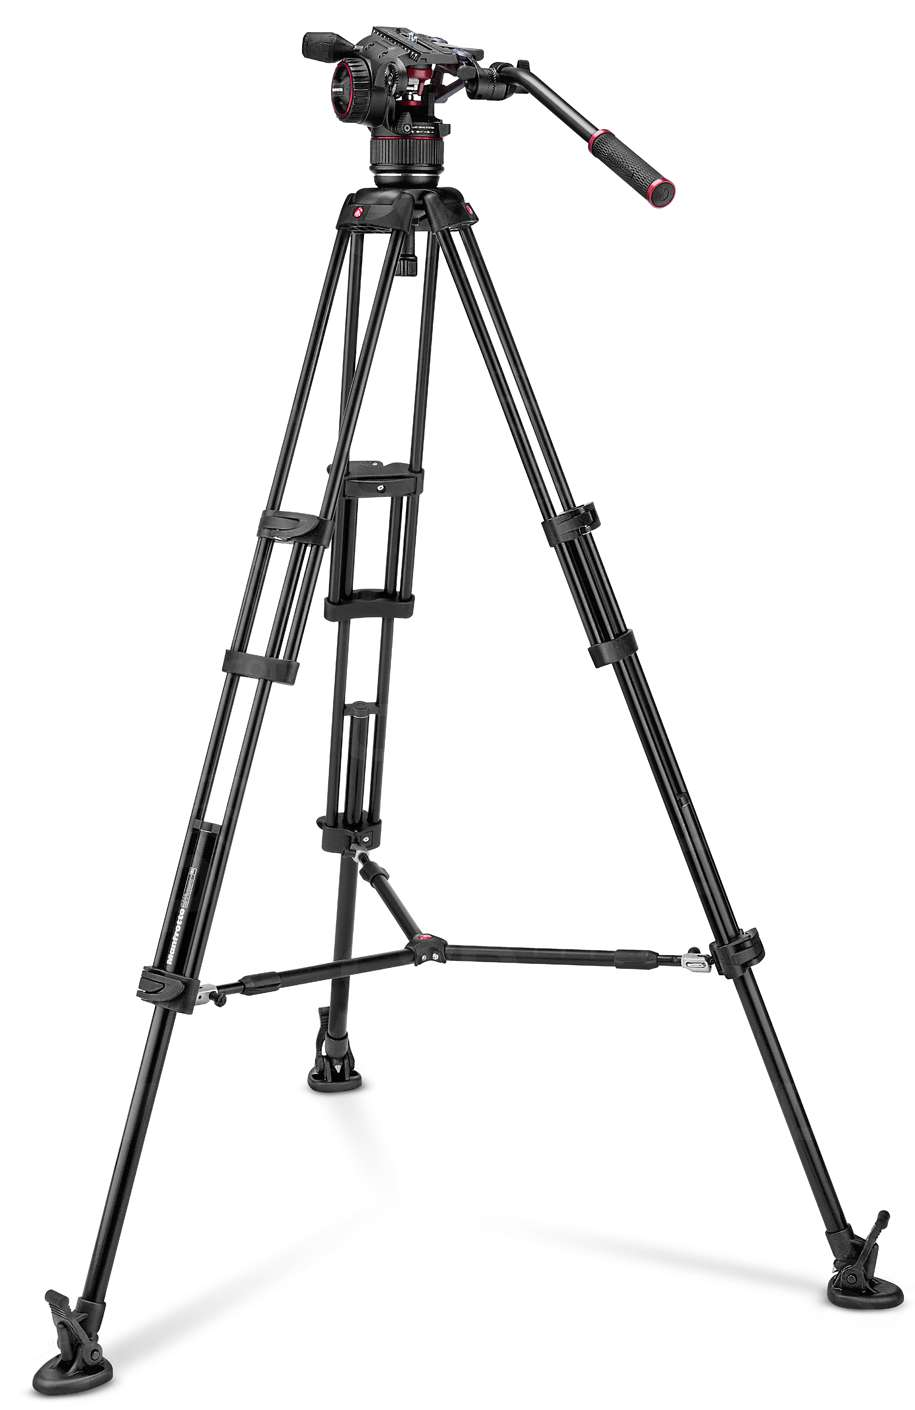 Manfrotto MVKN8TWINM (MVKN8TWINM) Nitrotech N8 and 546B Twin Legs Tripod with Mid-Level Spreader